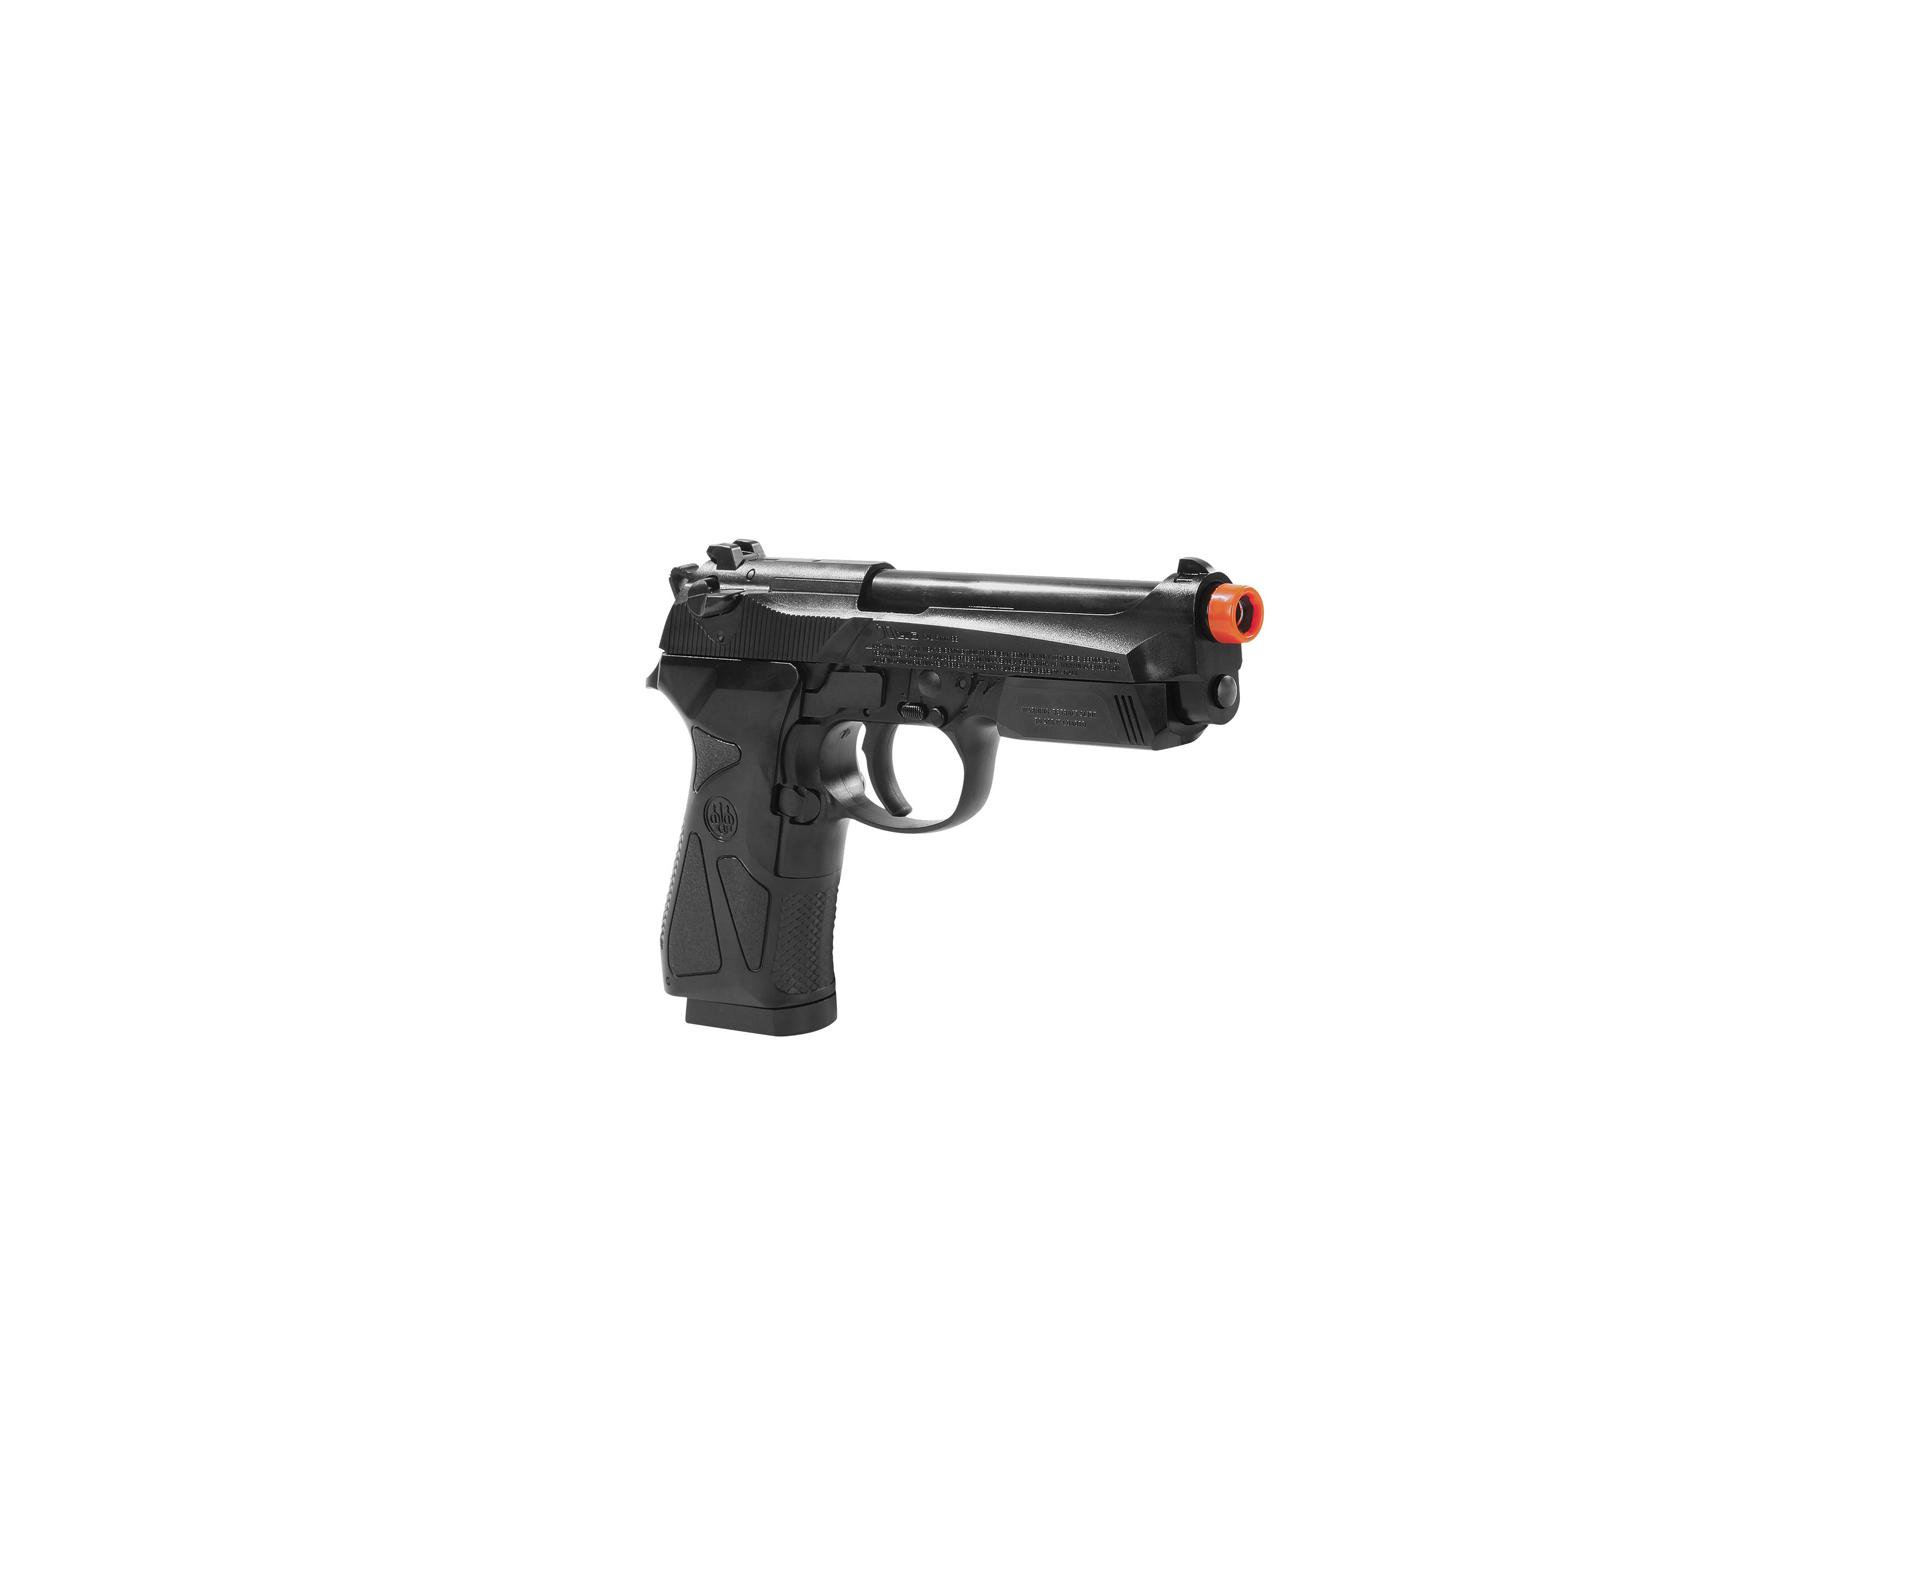 Pistola De Airsoft Bereta 90two - Calibre 6,0 Mm - Umarex